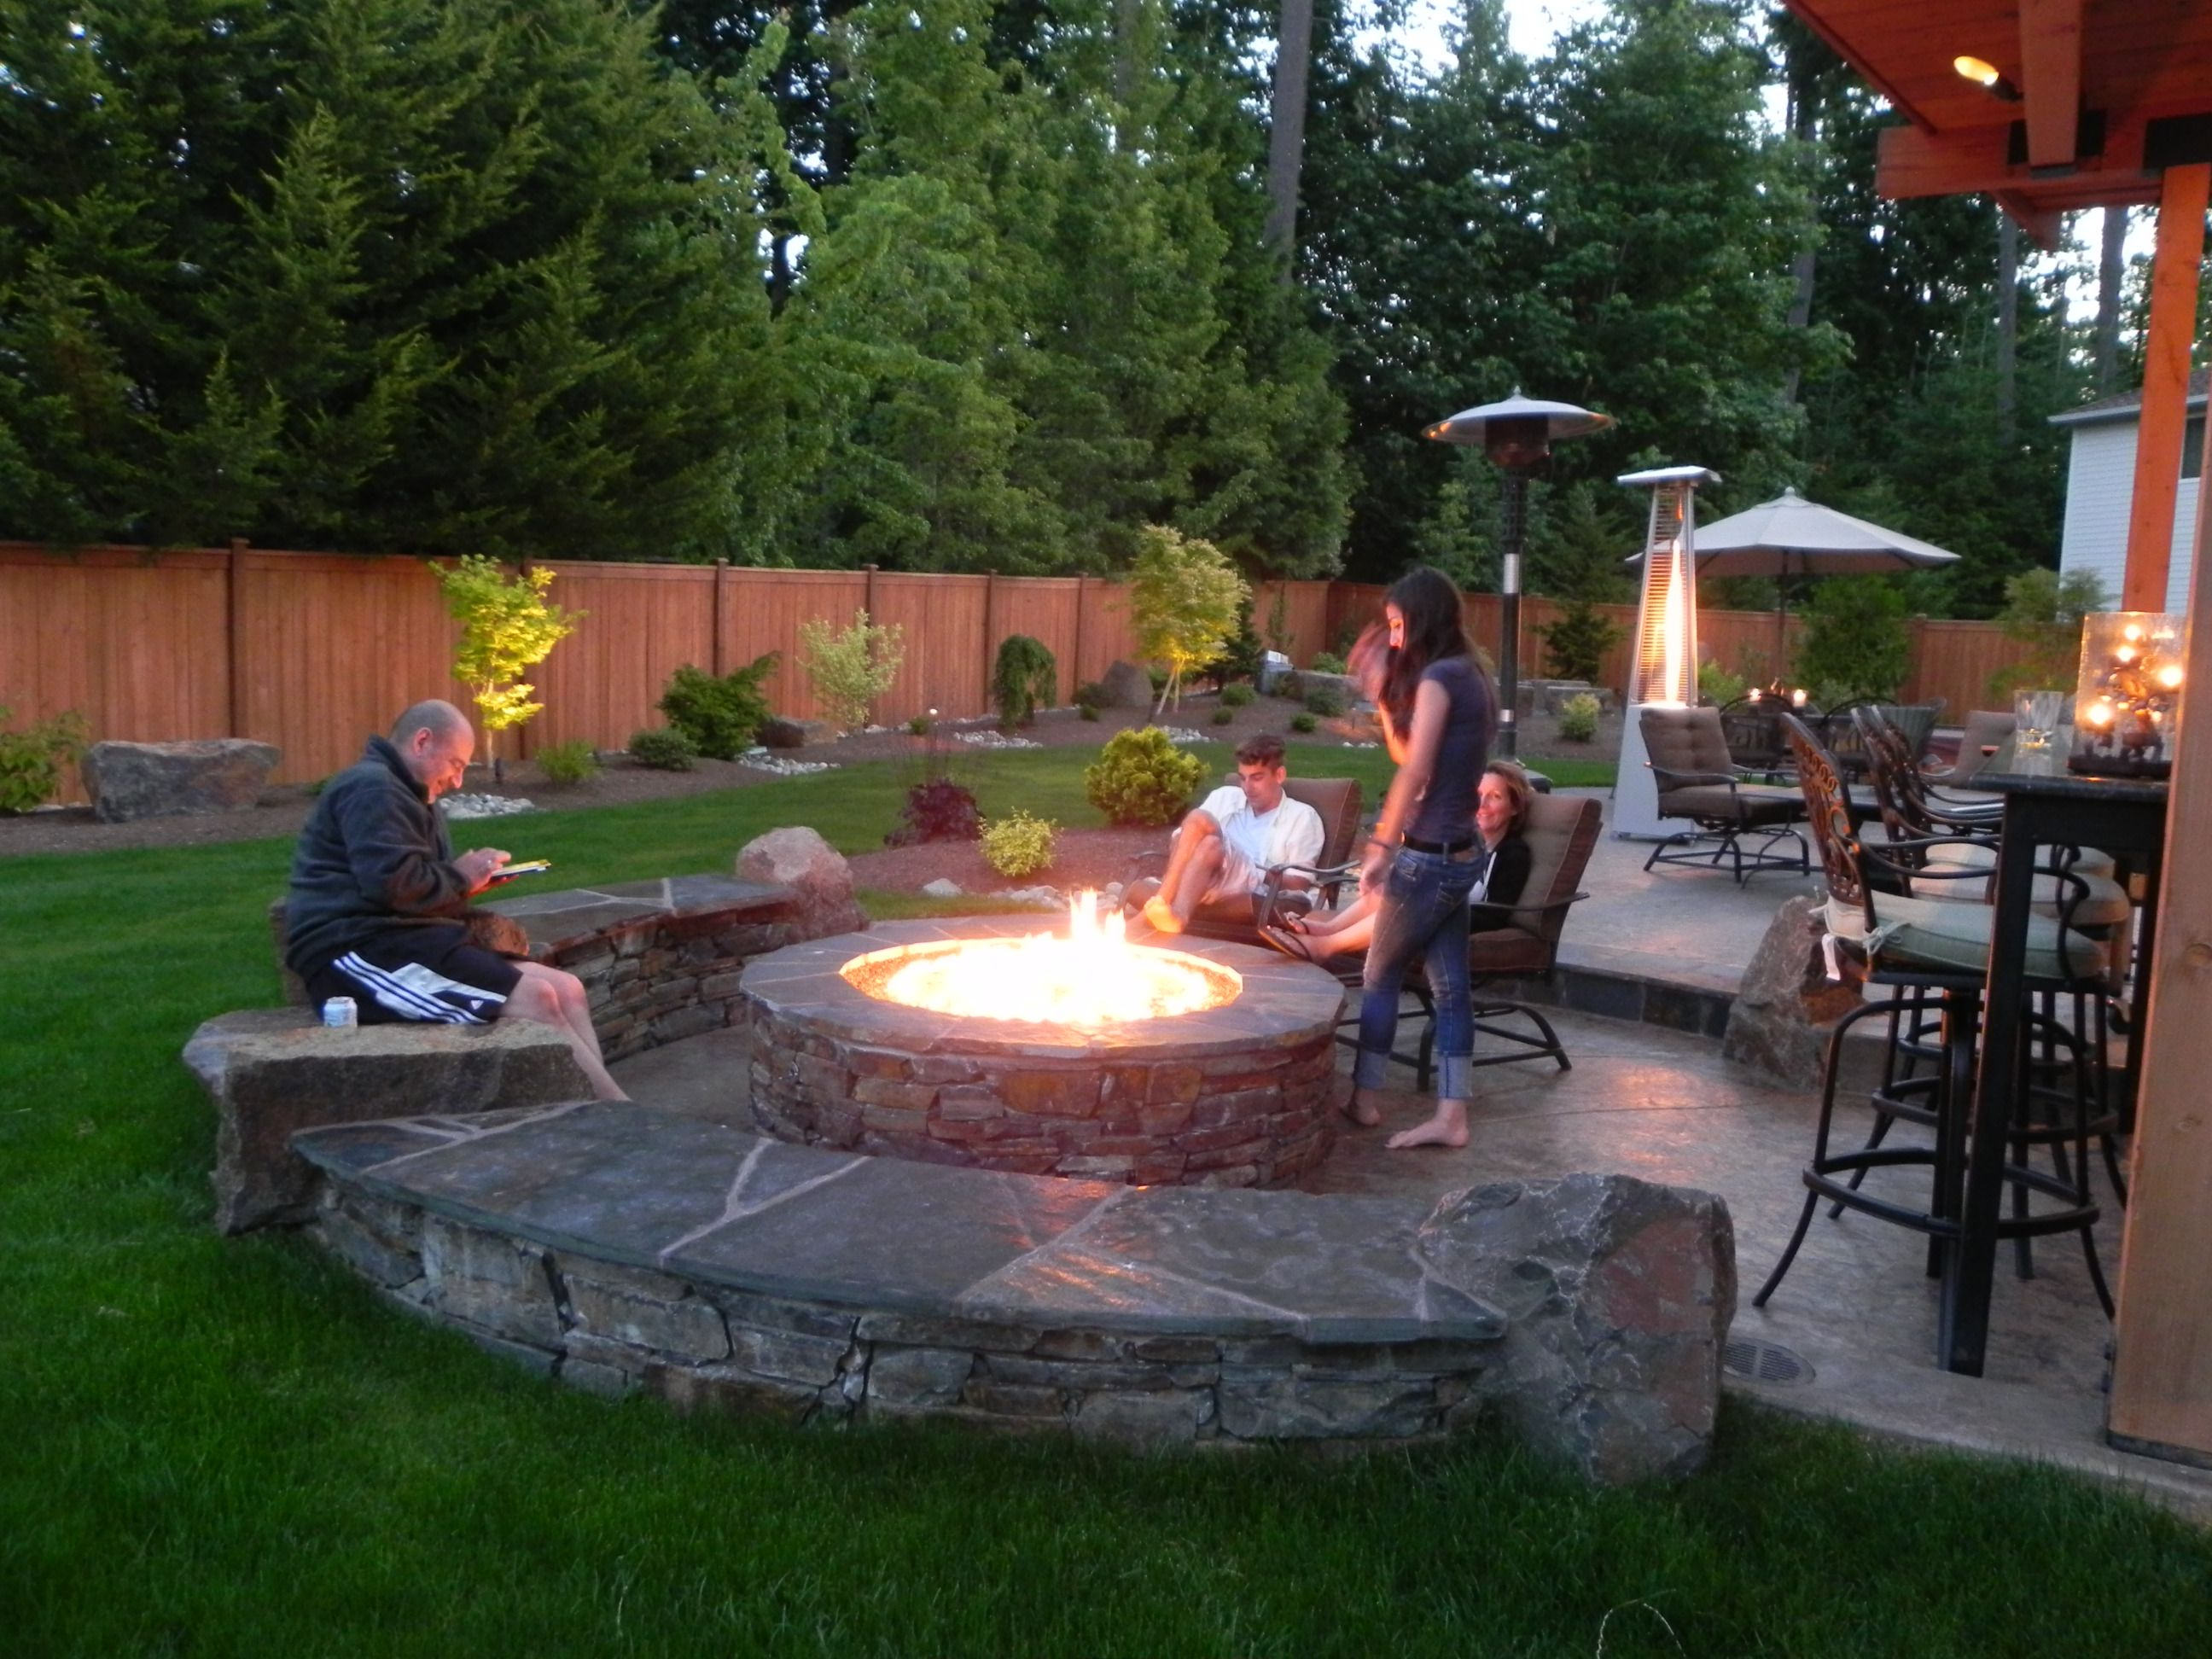 garden-exterior-furniture-outdoor-fireplace-adorable-and-cheap-fascinating-fire-wood-burning-fire-pit-pit-ideas-outdoor-decoration-for-backyard-inspirational-garden-seating-with-cool-modern-furniture